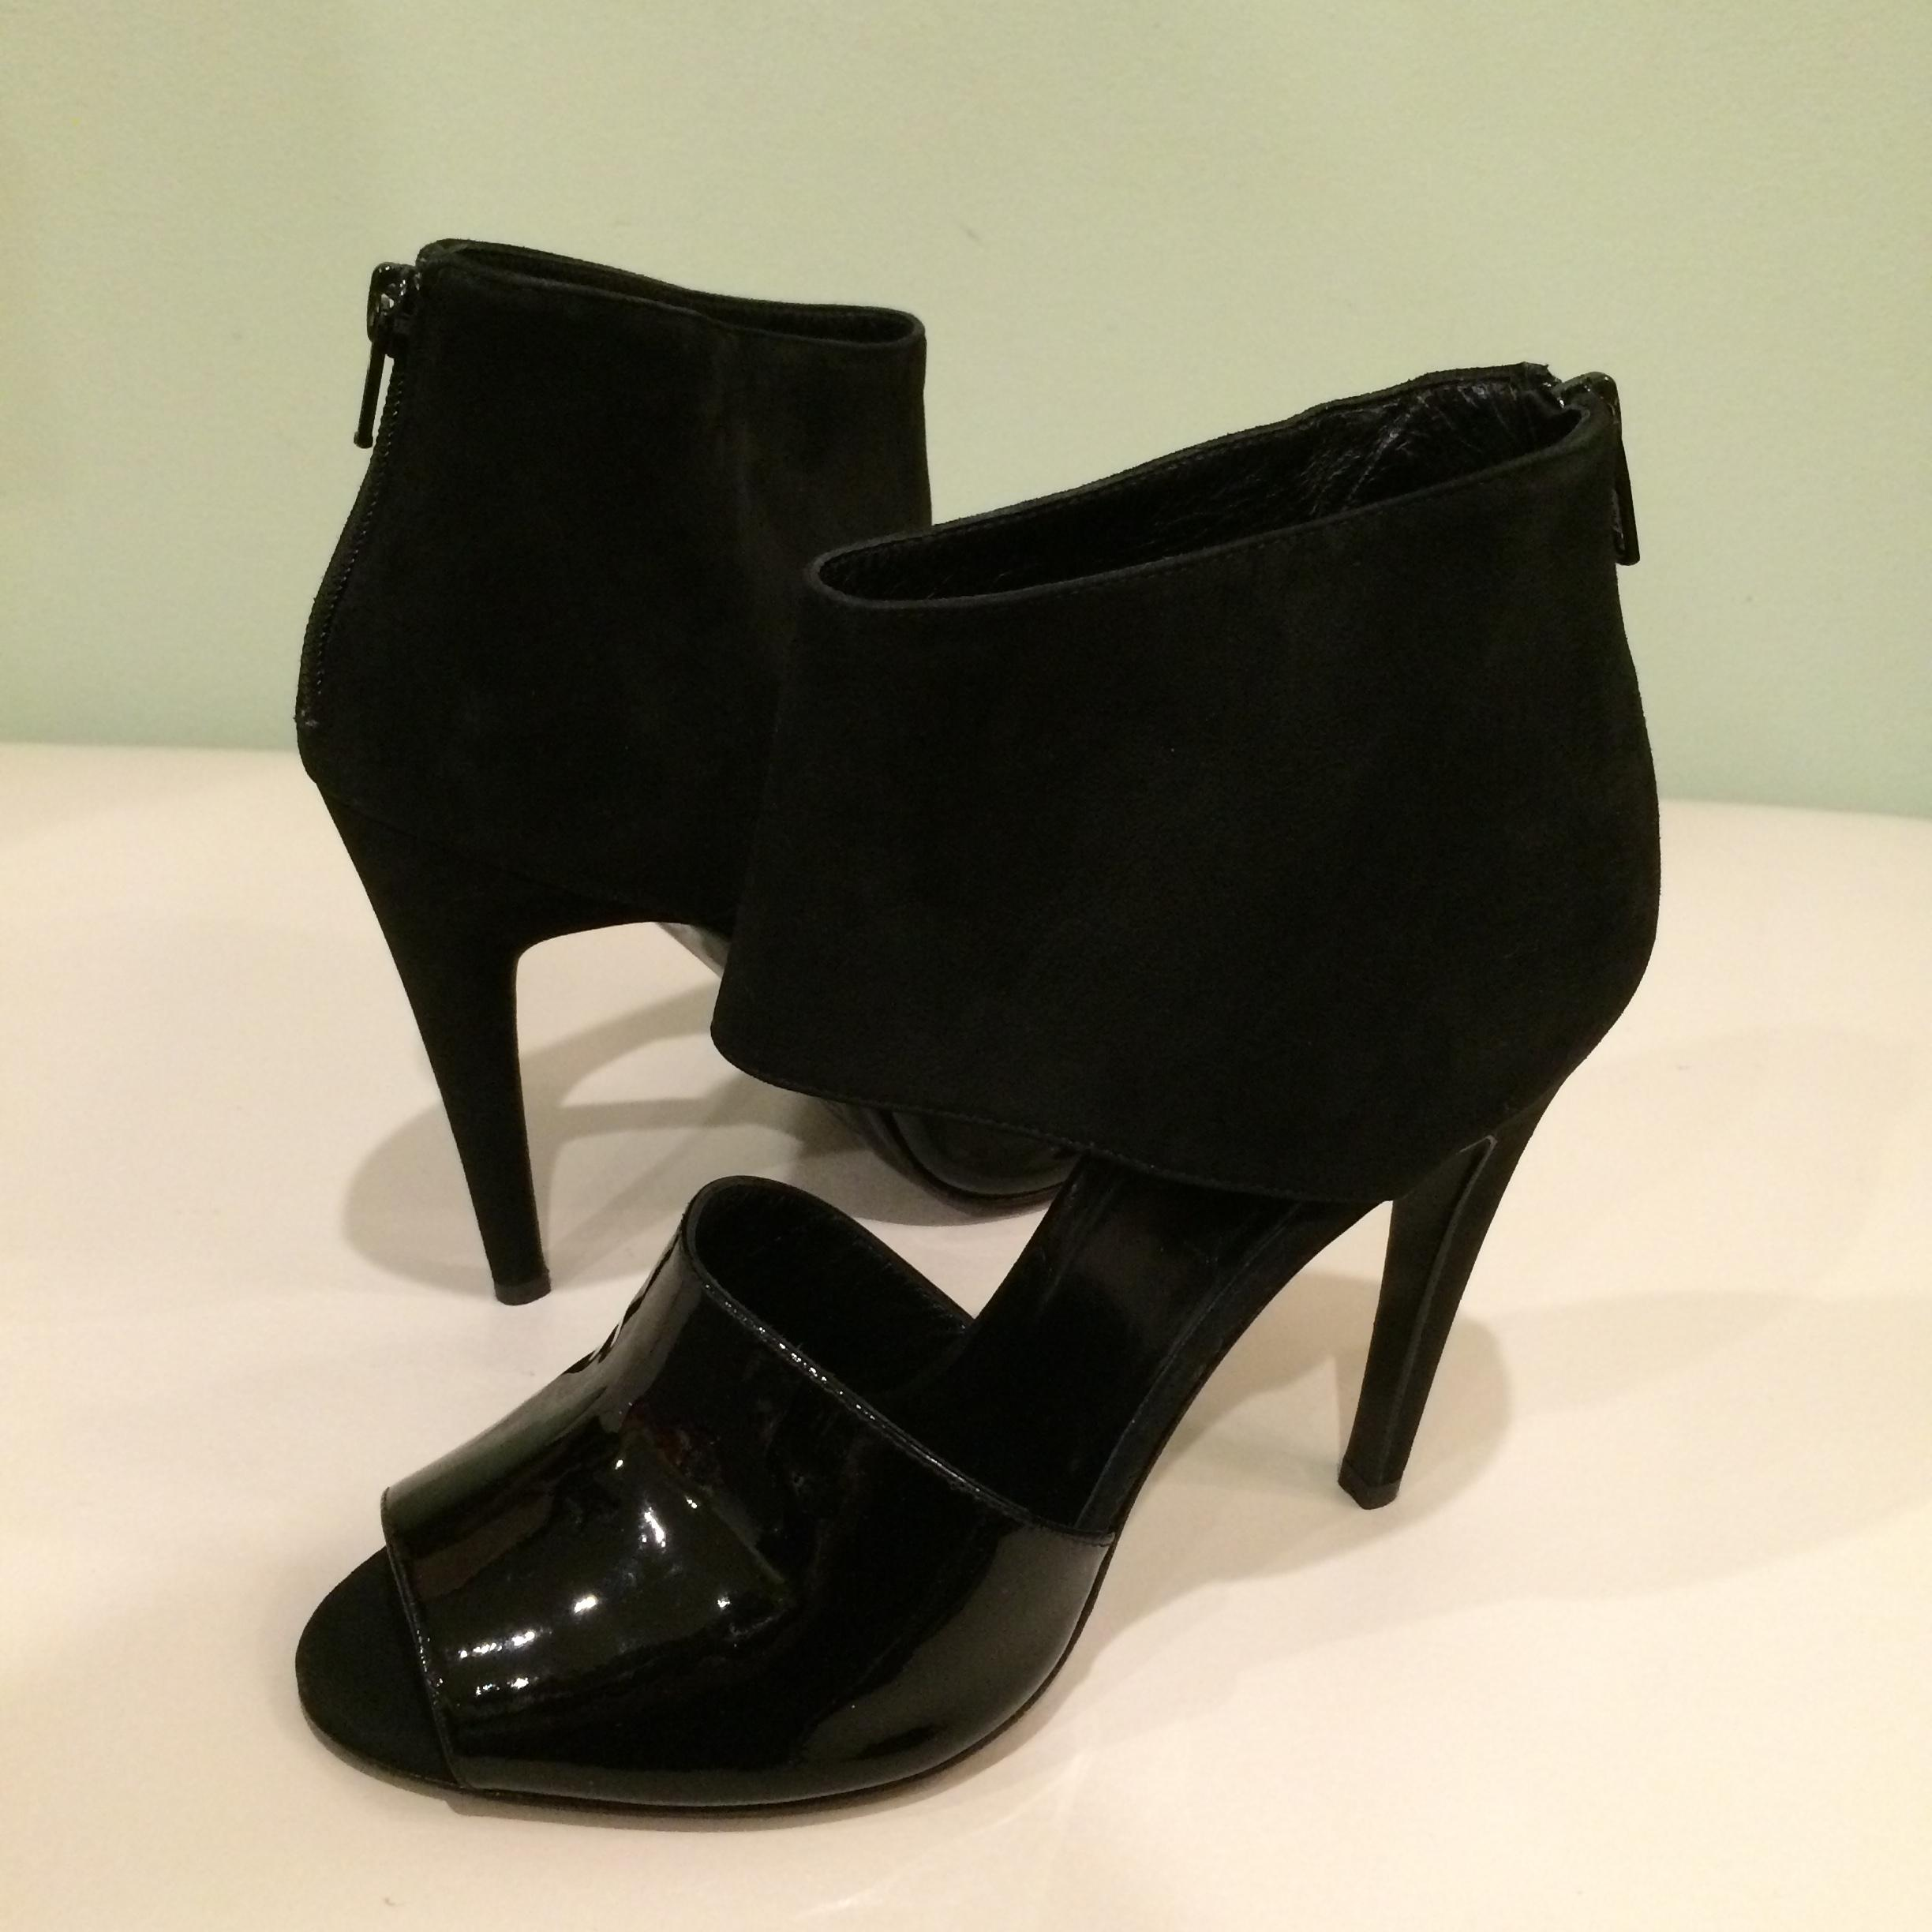 low cost cheap online Pierre Hardy Leather Peep-Toe Ankle Boots buy cheap latest collections clearance wiki cheap sale visit new real cheap price bpZ8ZFeS3